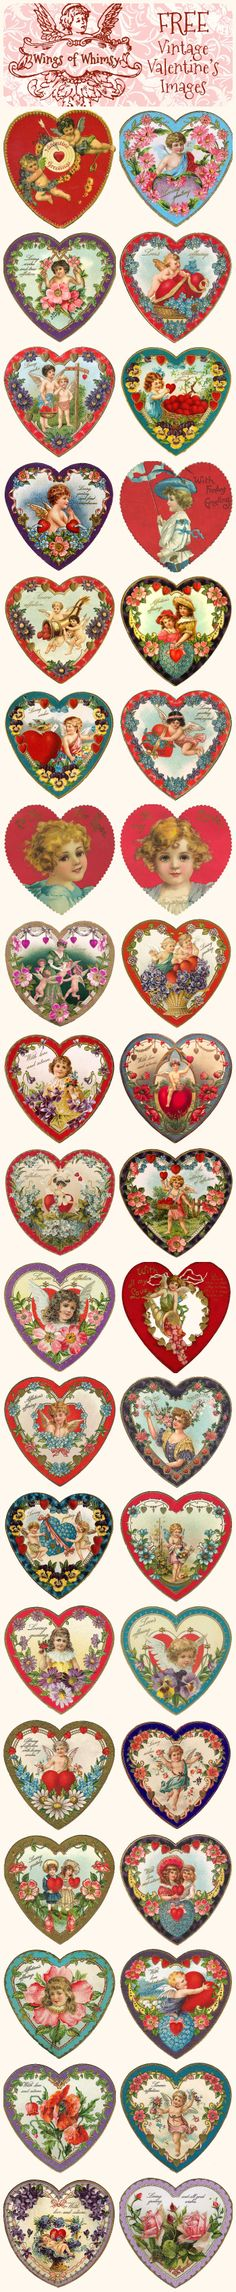 Wings of Whimsy: Valentine Hearts to Use for DIY Projects (see next 3 pins) - free for personal use